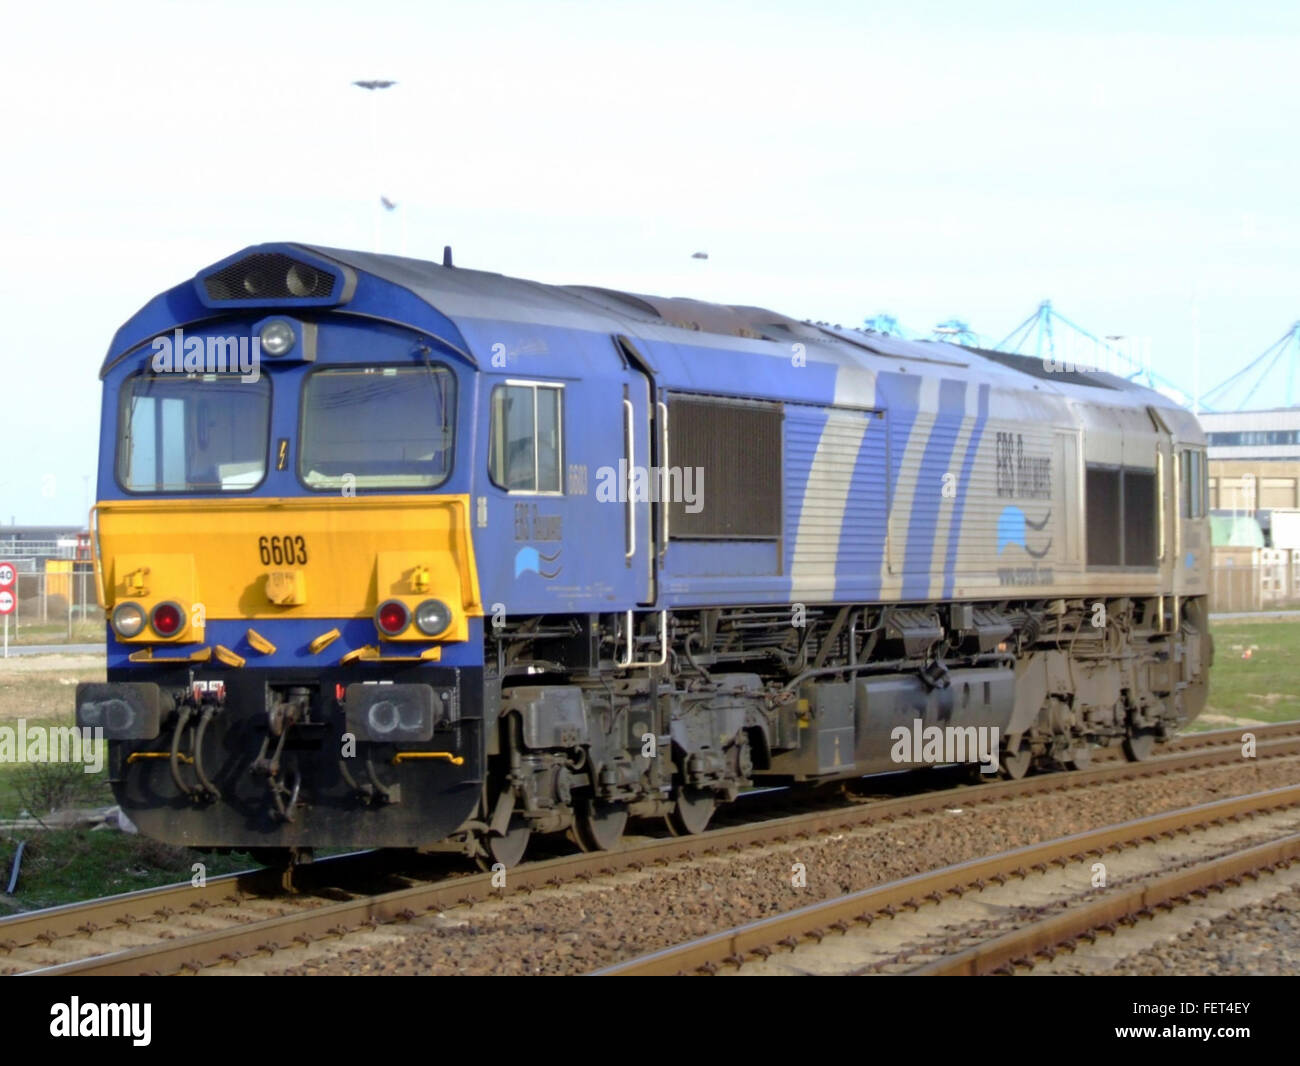 Electro Motive Diesel >> General Motors Electro Motive Diesel Class 66 6603 Stock Photo